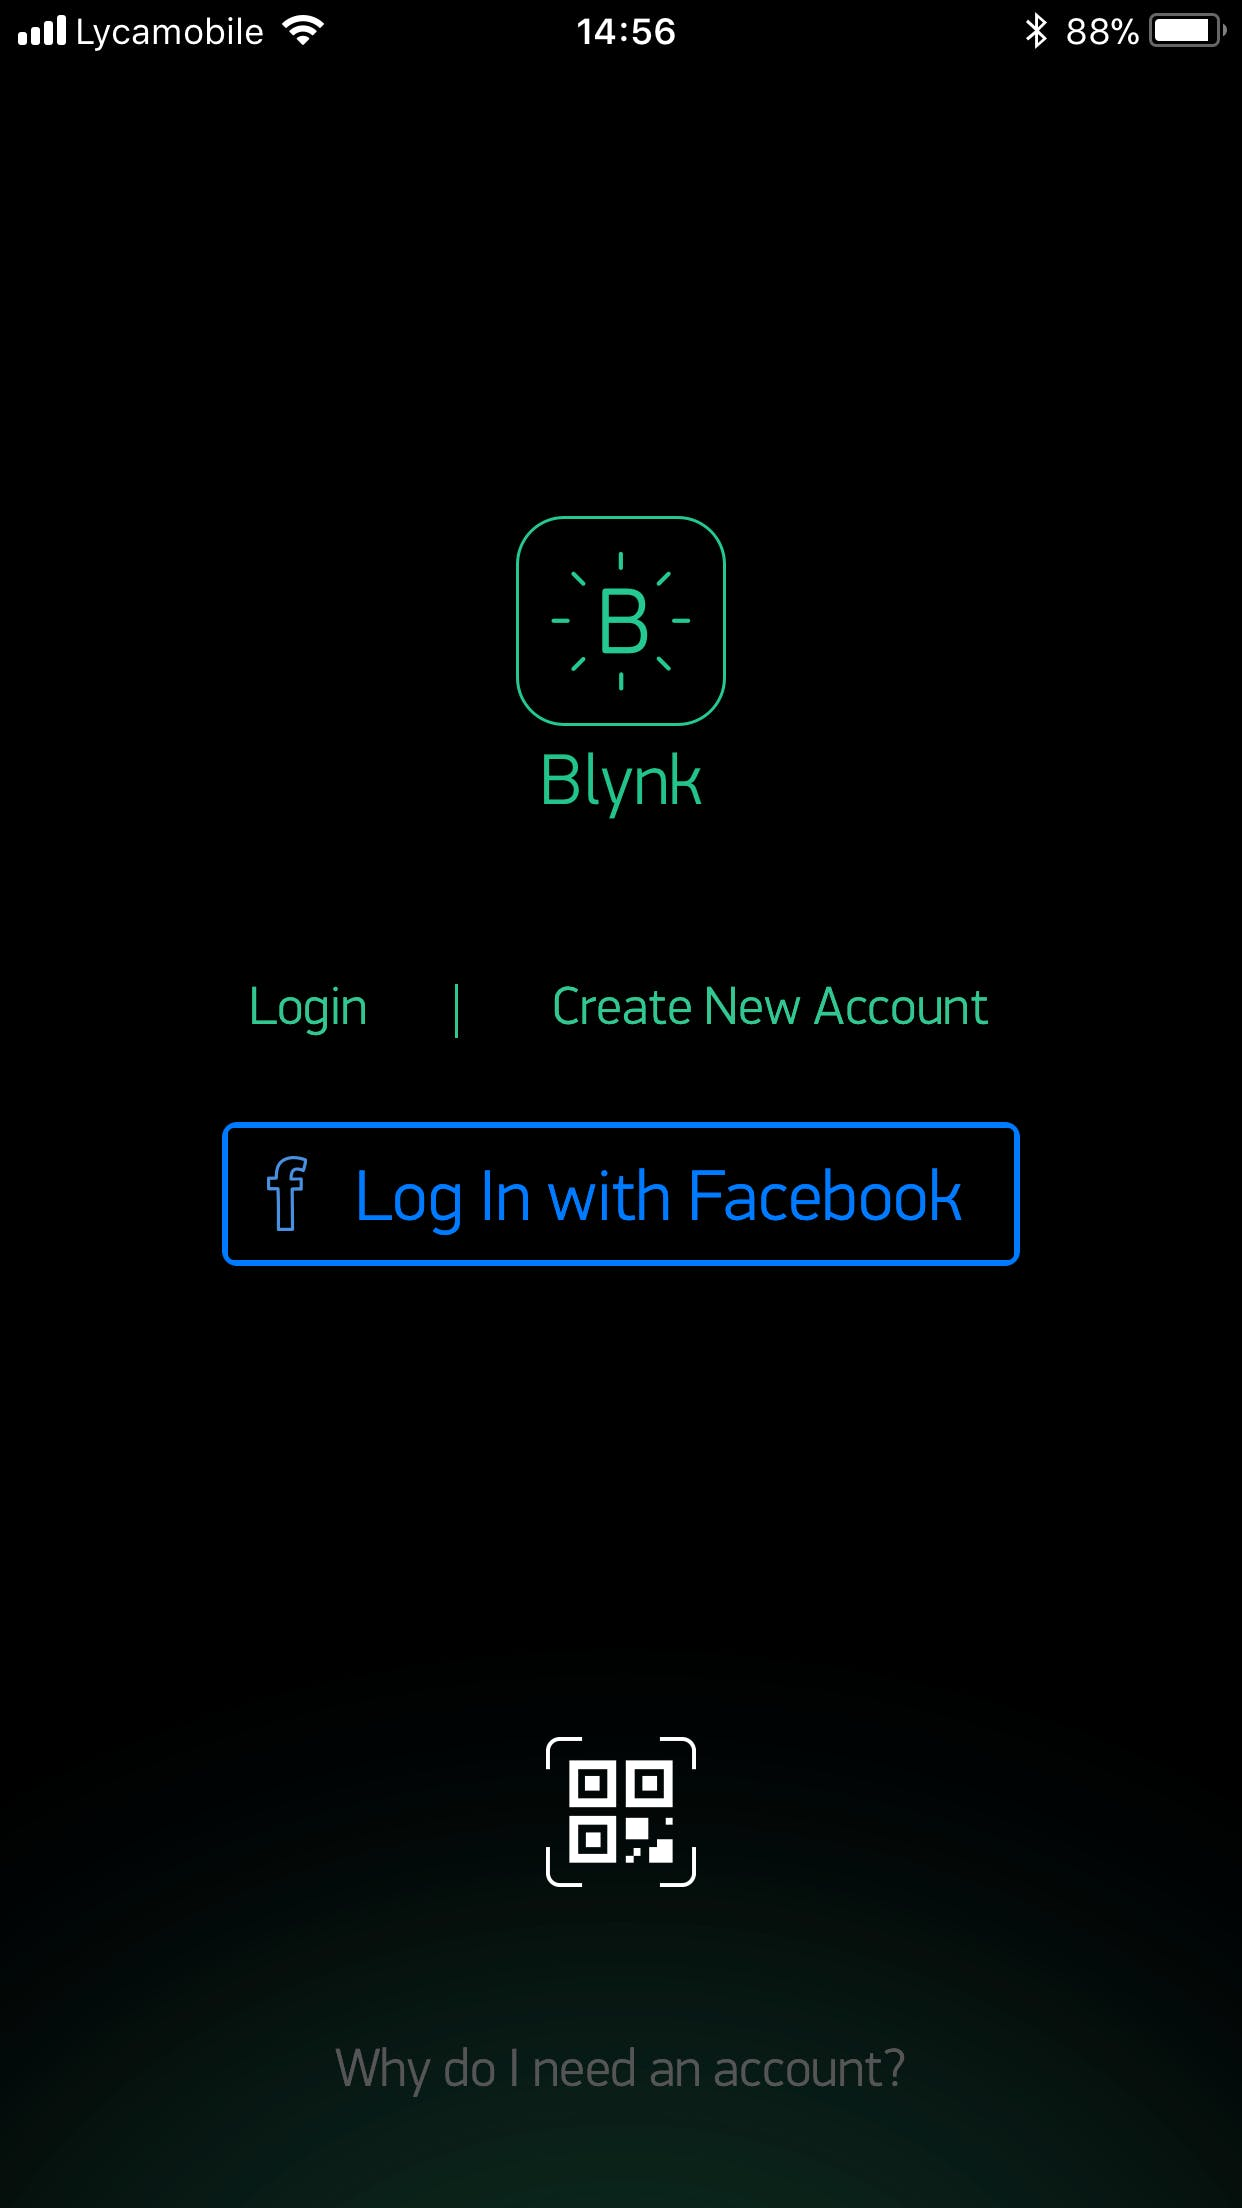 The first step is to open the app and sign in or create an account